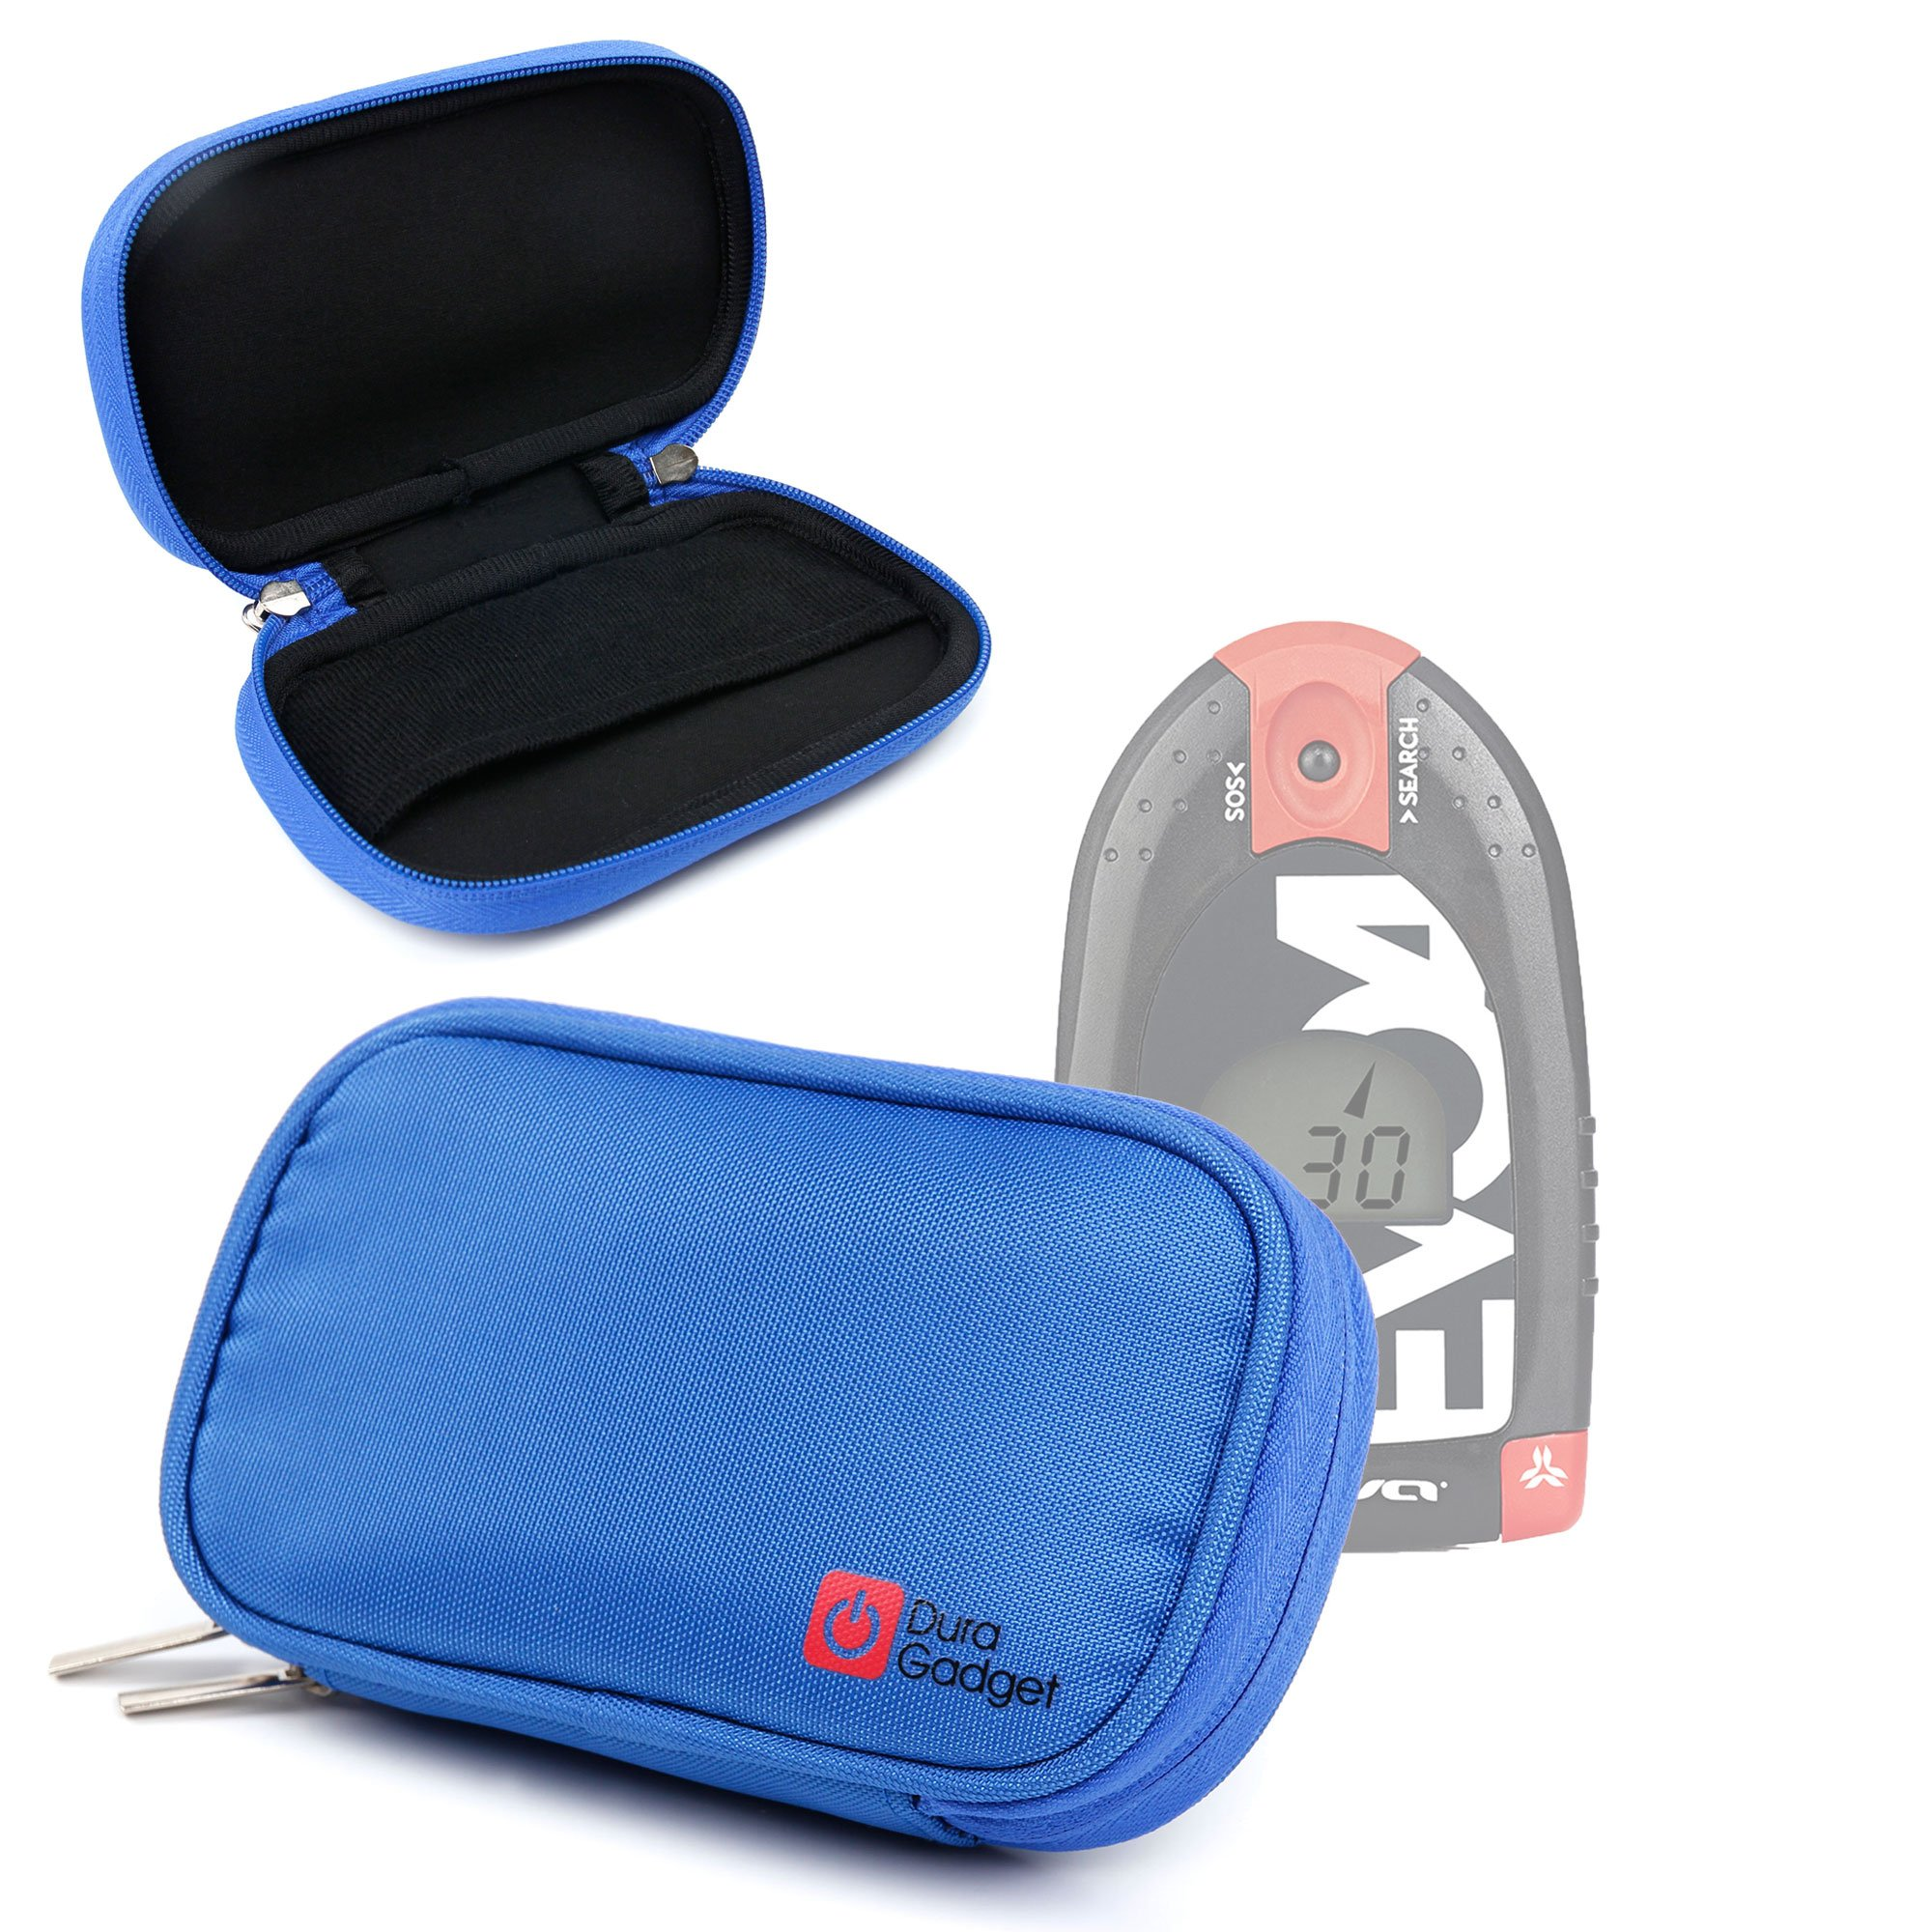 DURAGADGET High Quality Blue Memory Foam Protective Case for NEW Arva Evo 4 Avalanche Transceiver by DURAGADGET